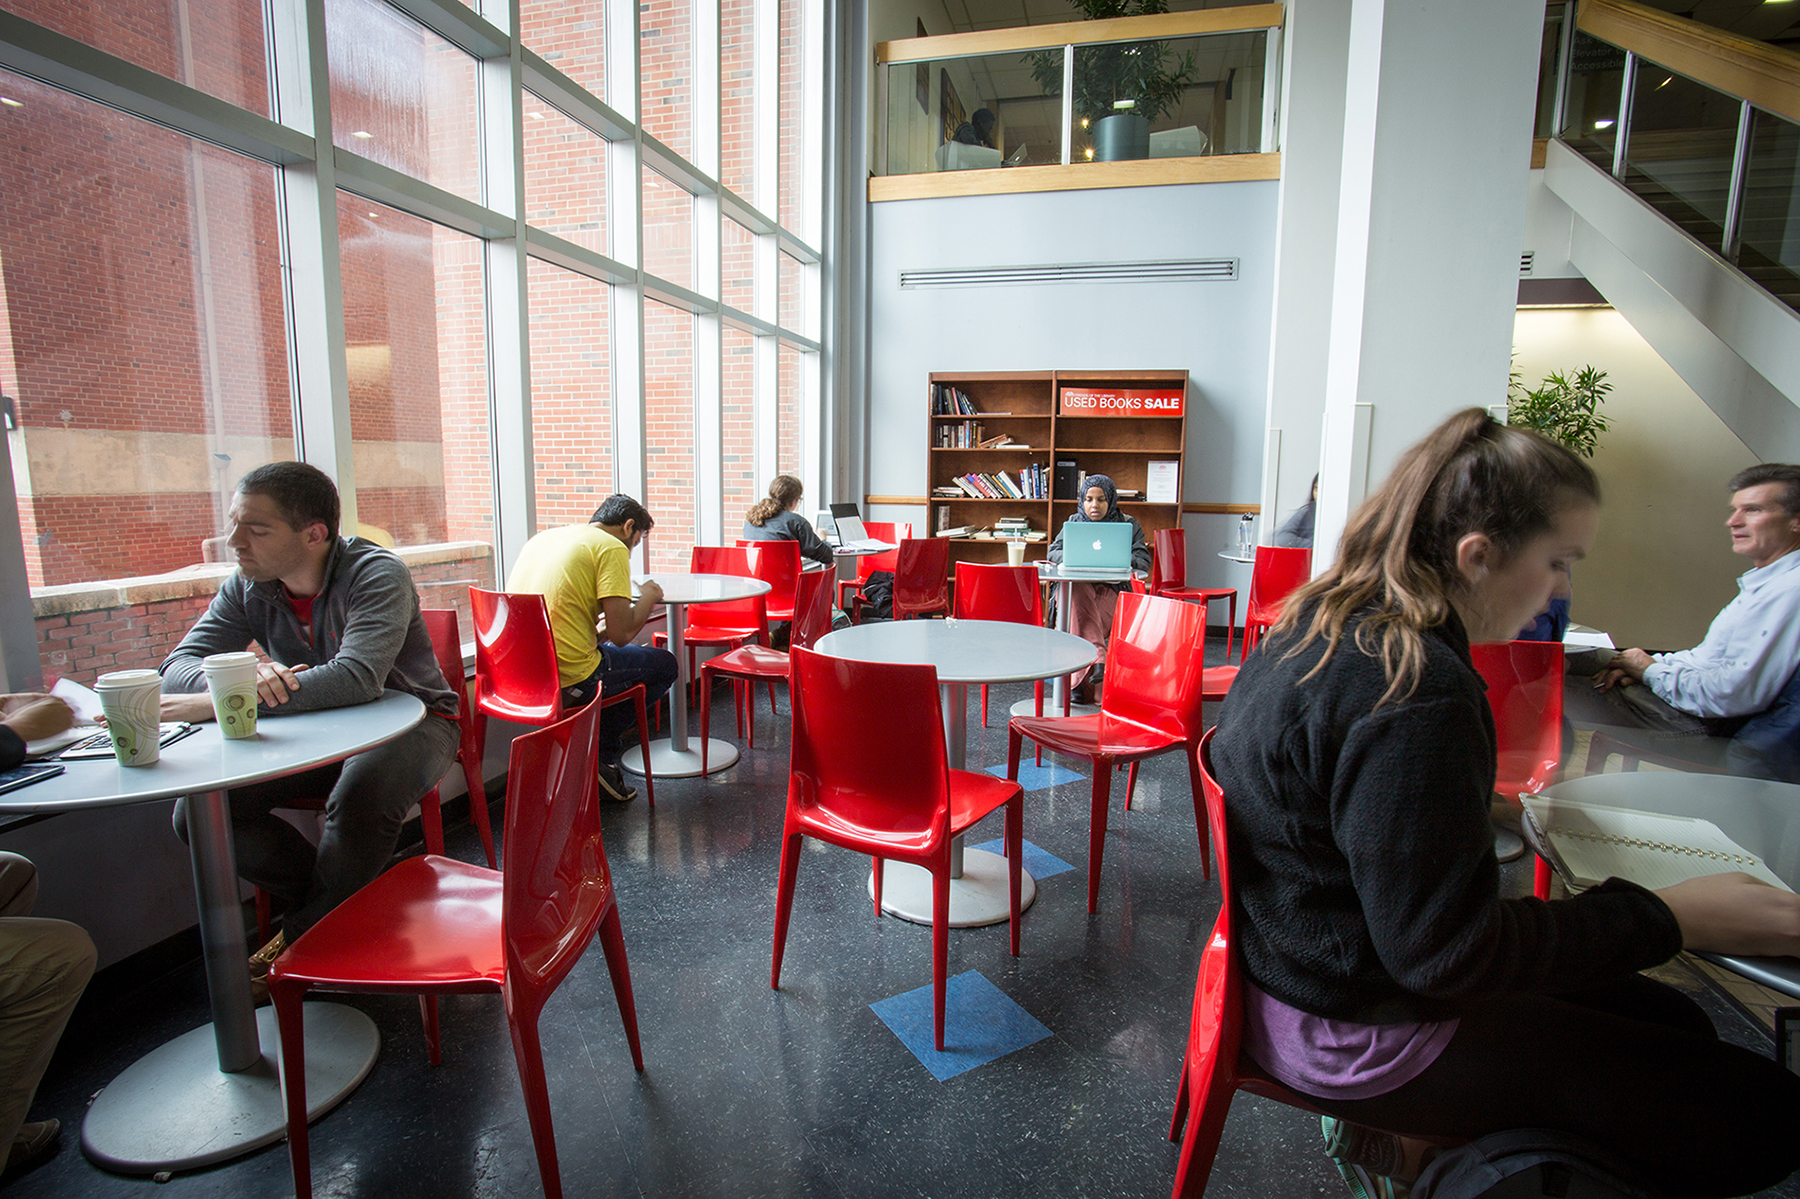 Students drinking coffee at tables in between a glass wall and a staircase